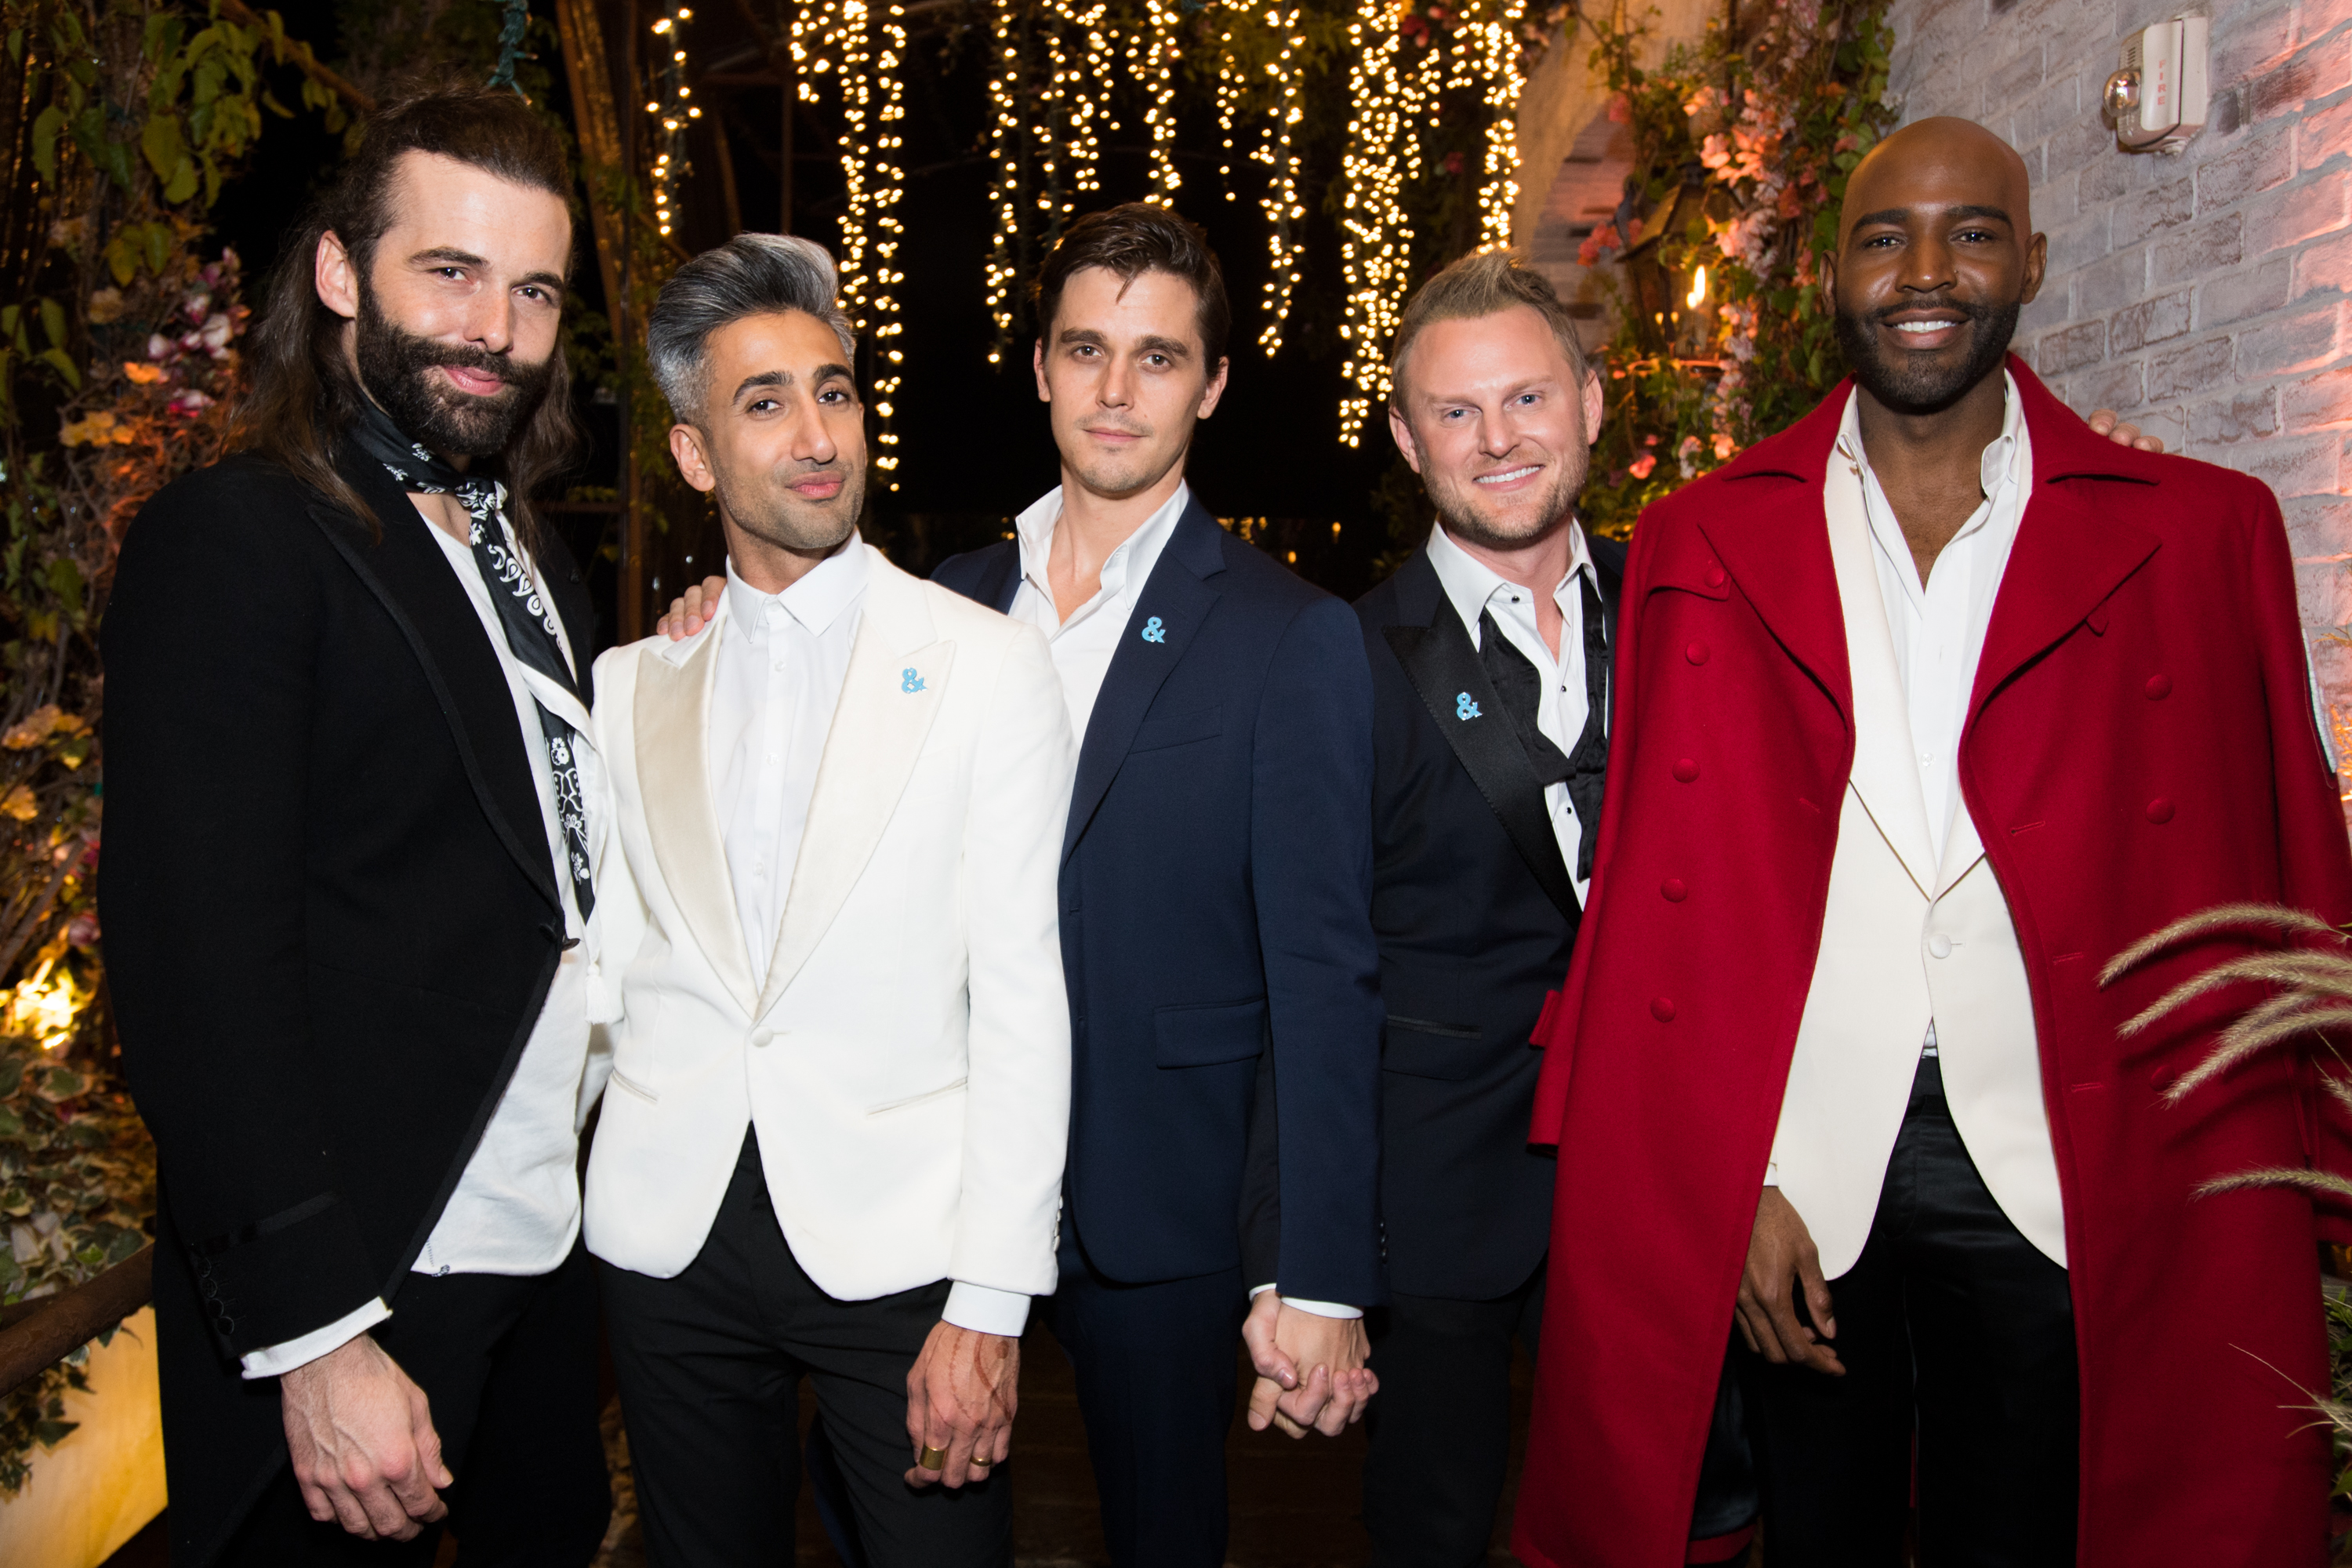 Premiere Of Netflix's 'Queer Eye' Season 1 - After Party